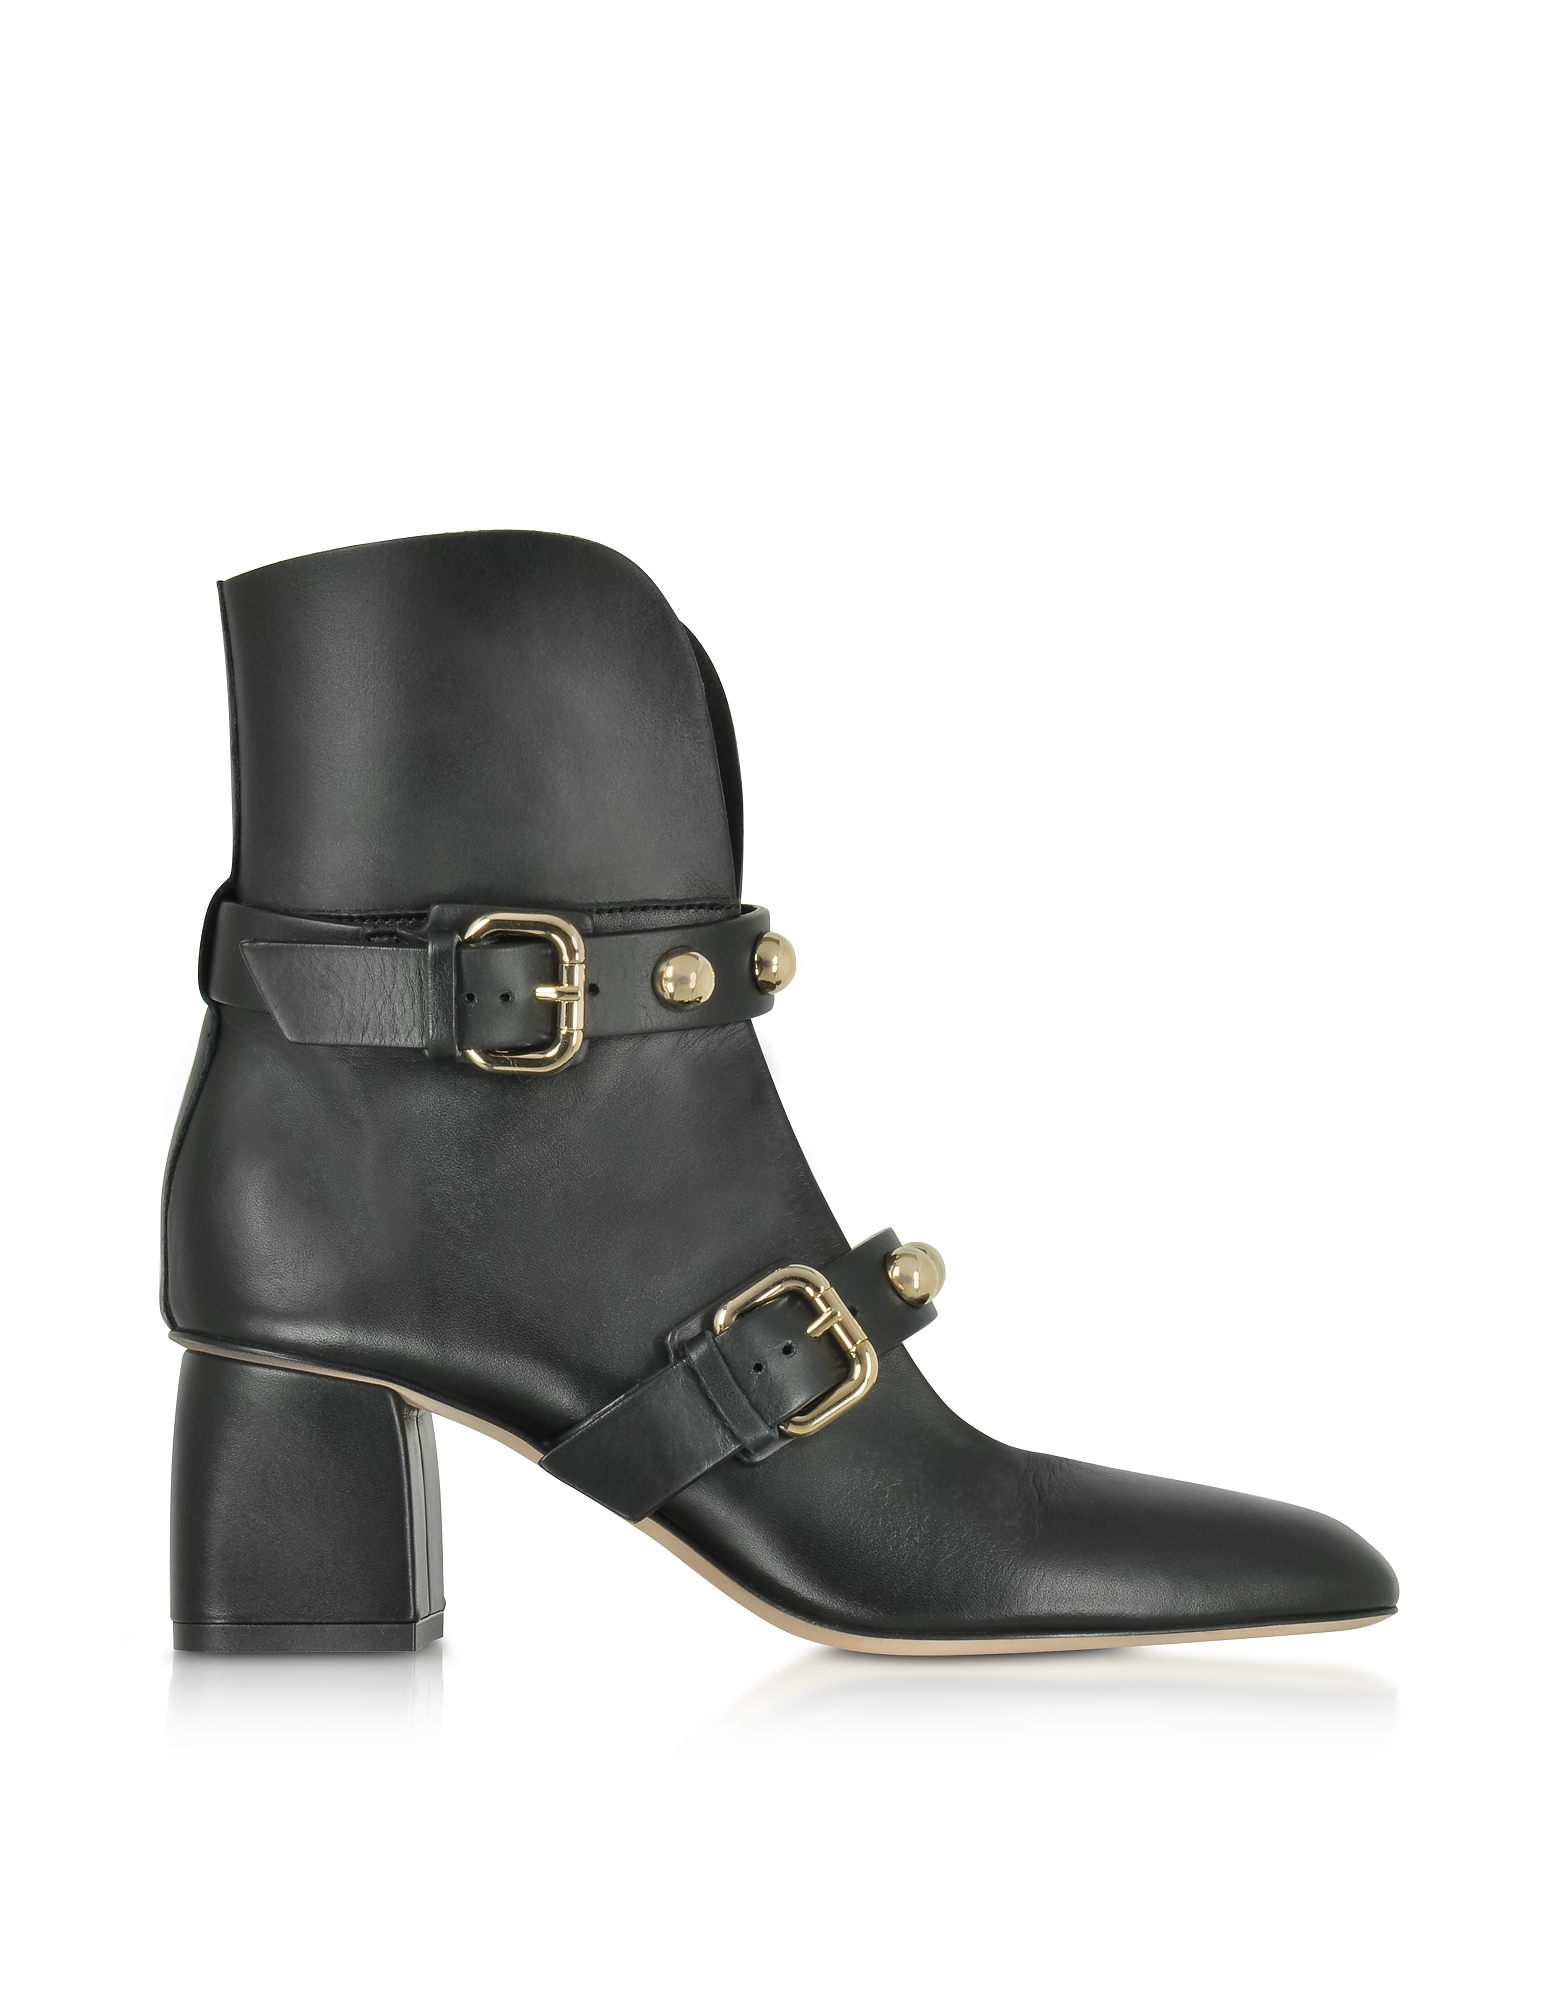 RED Valentino Shoes, Black Leather Heel Booties w/Buckles and Studs